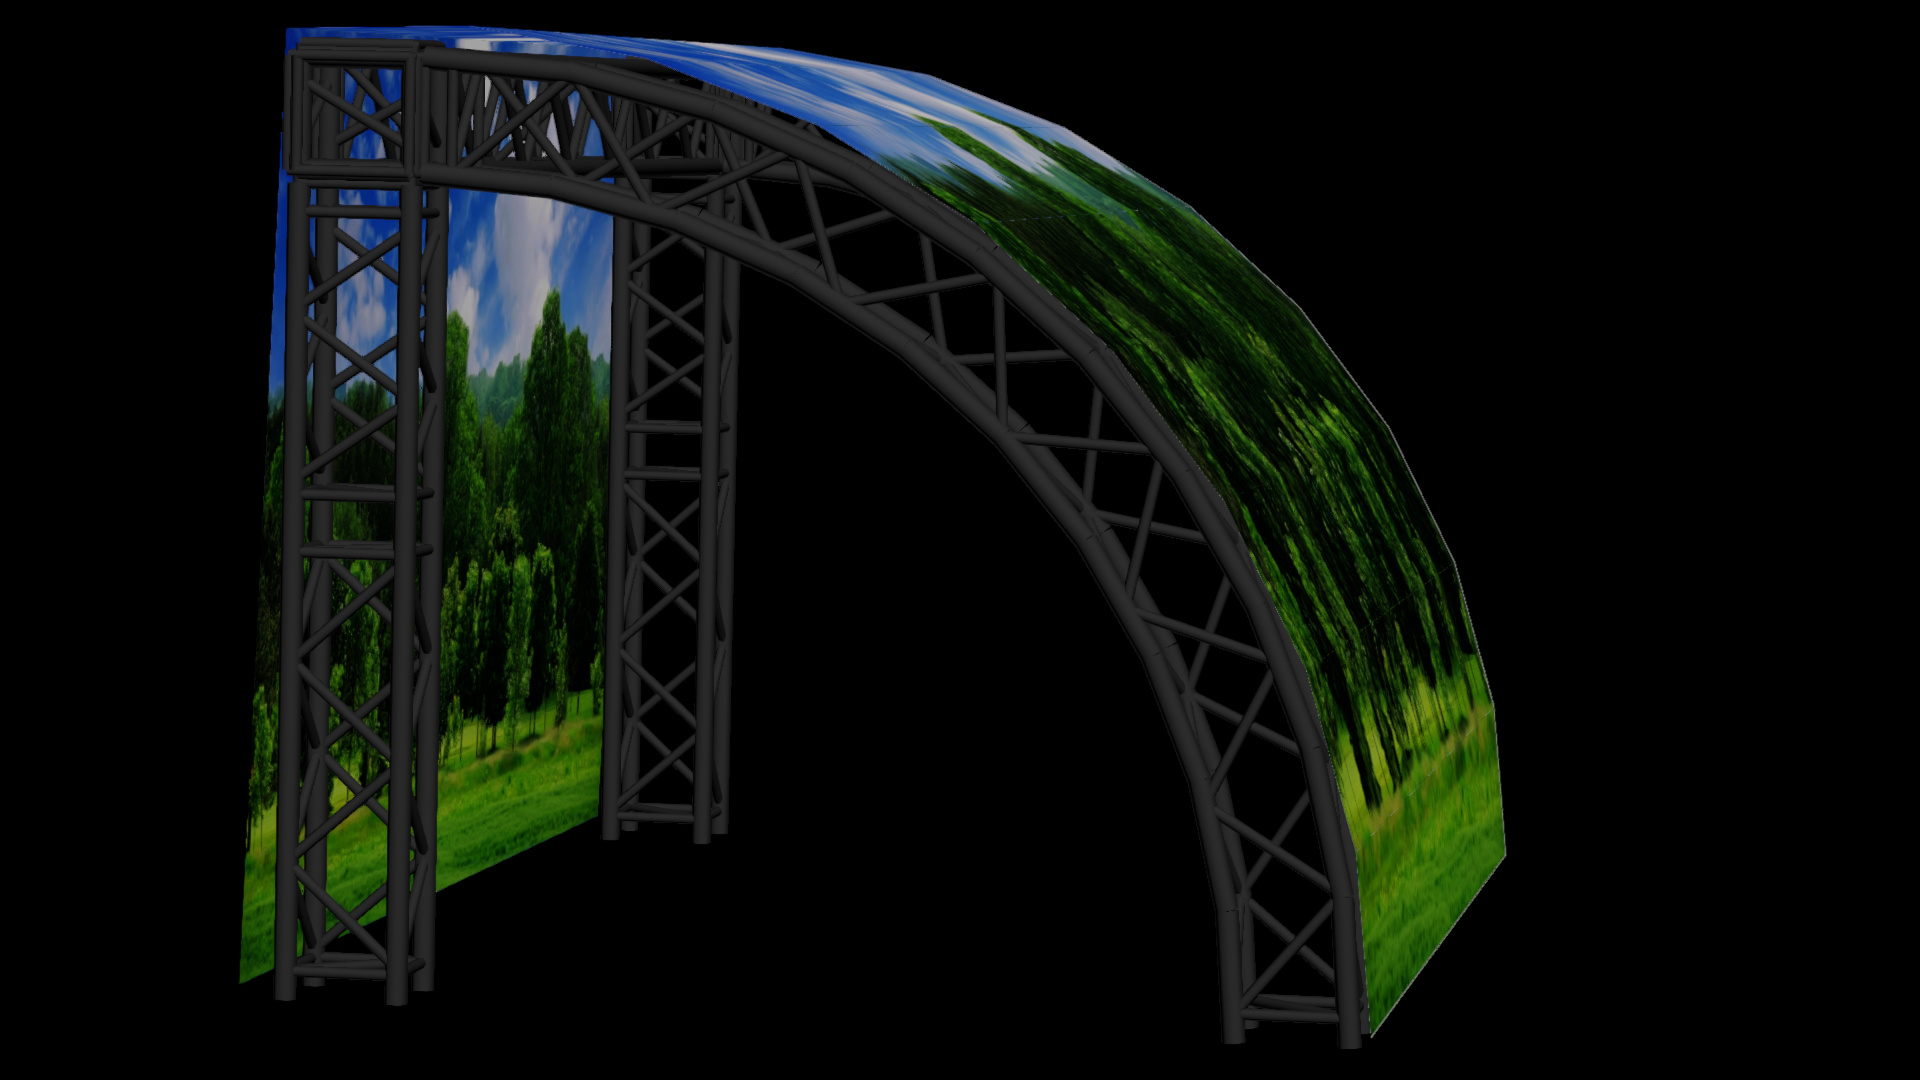 projection arch 2.JPG